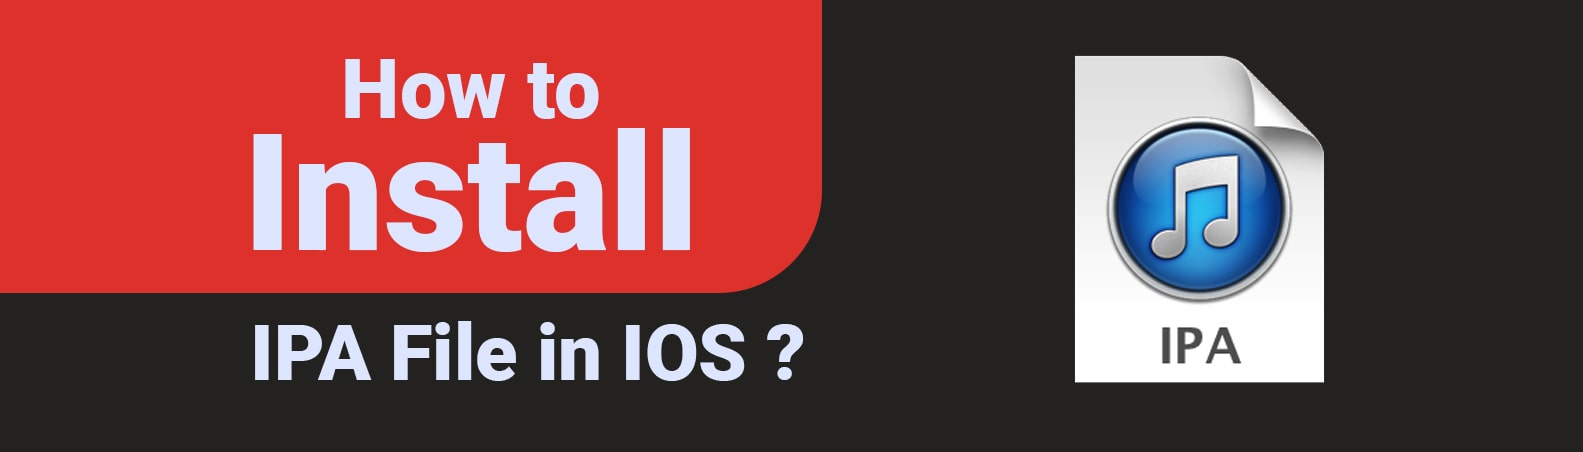 How to Install IPA File in IOS ? – IOS App IPA